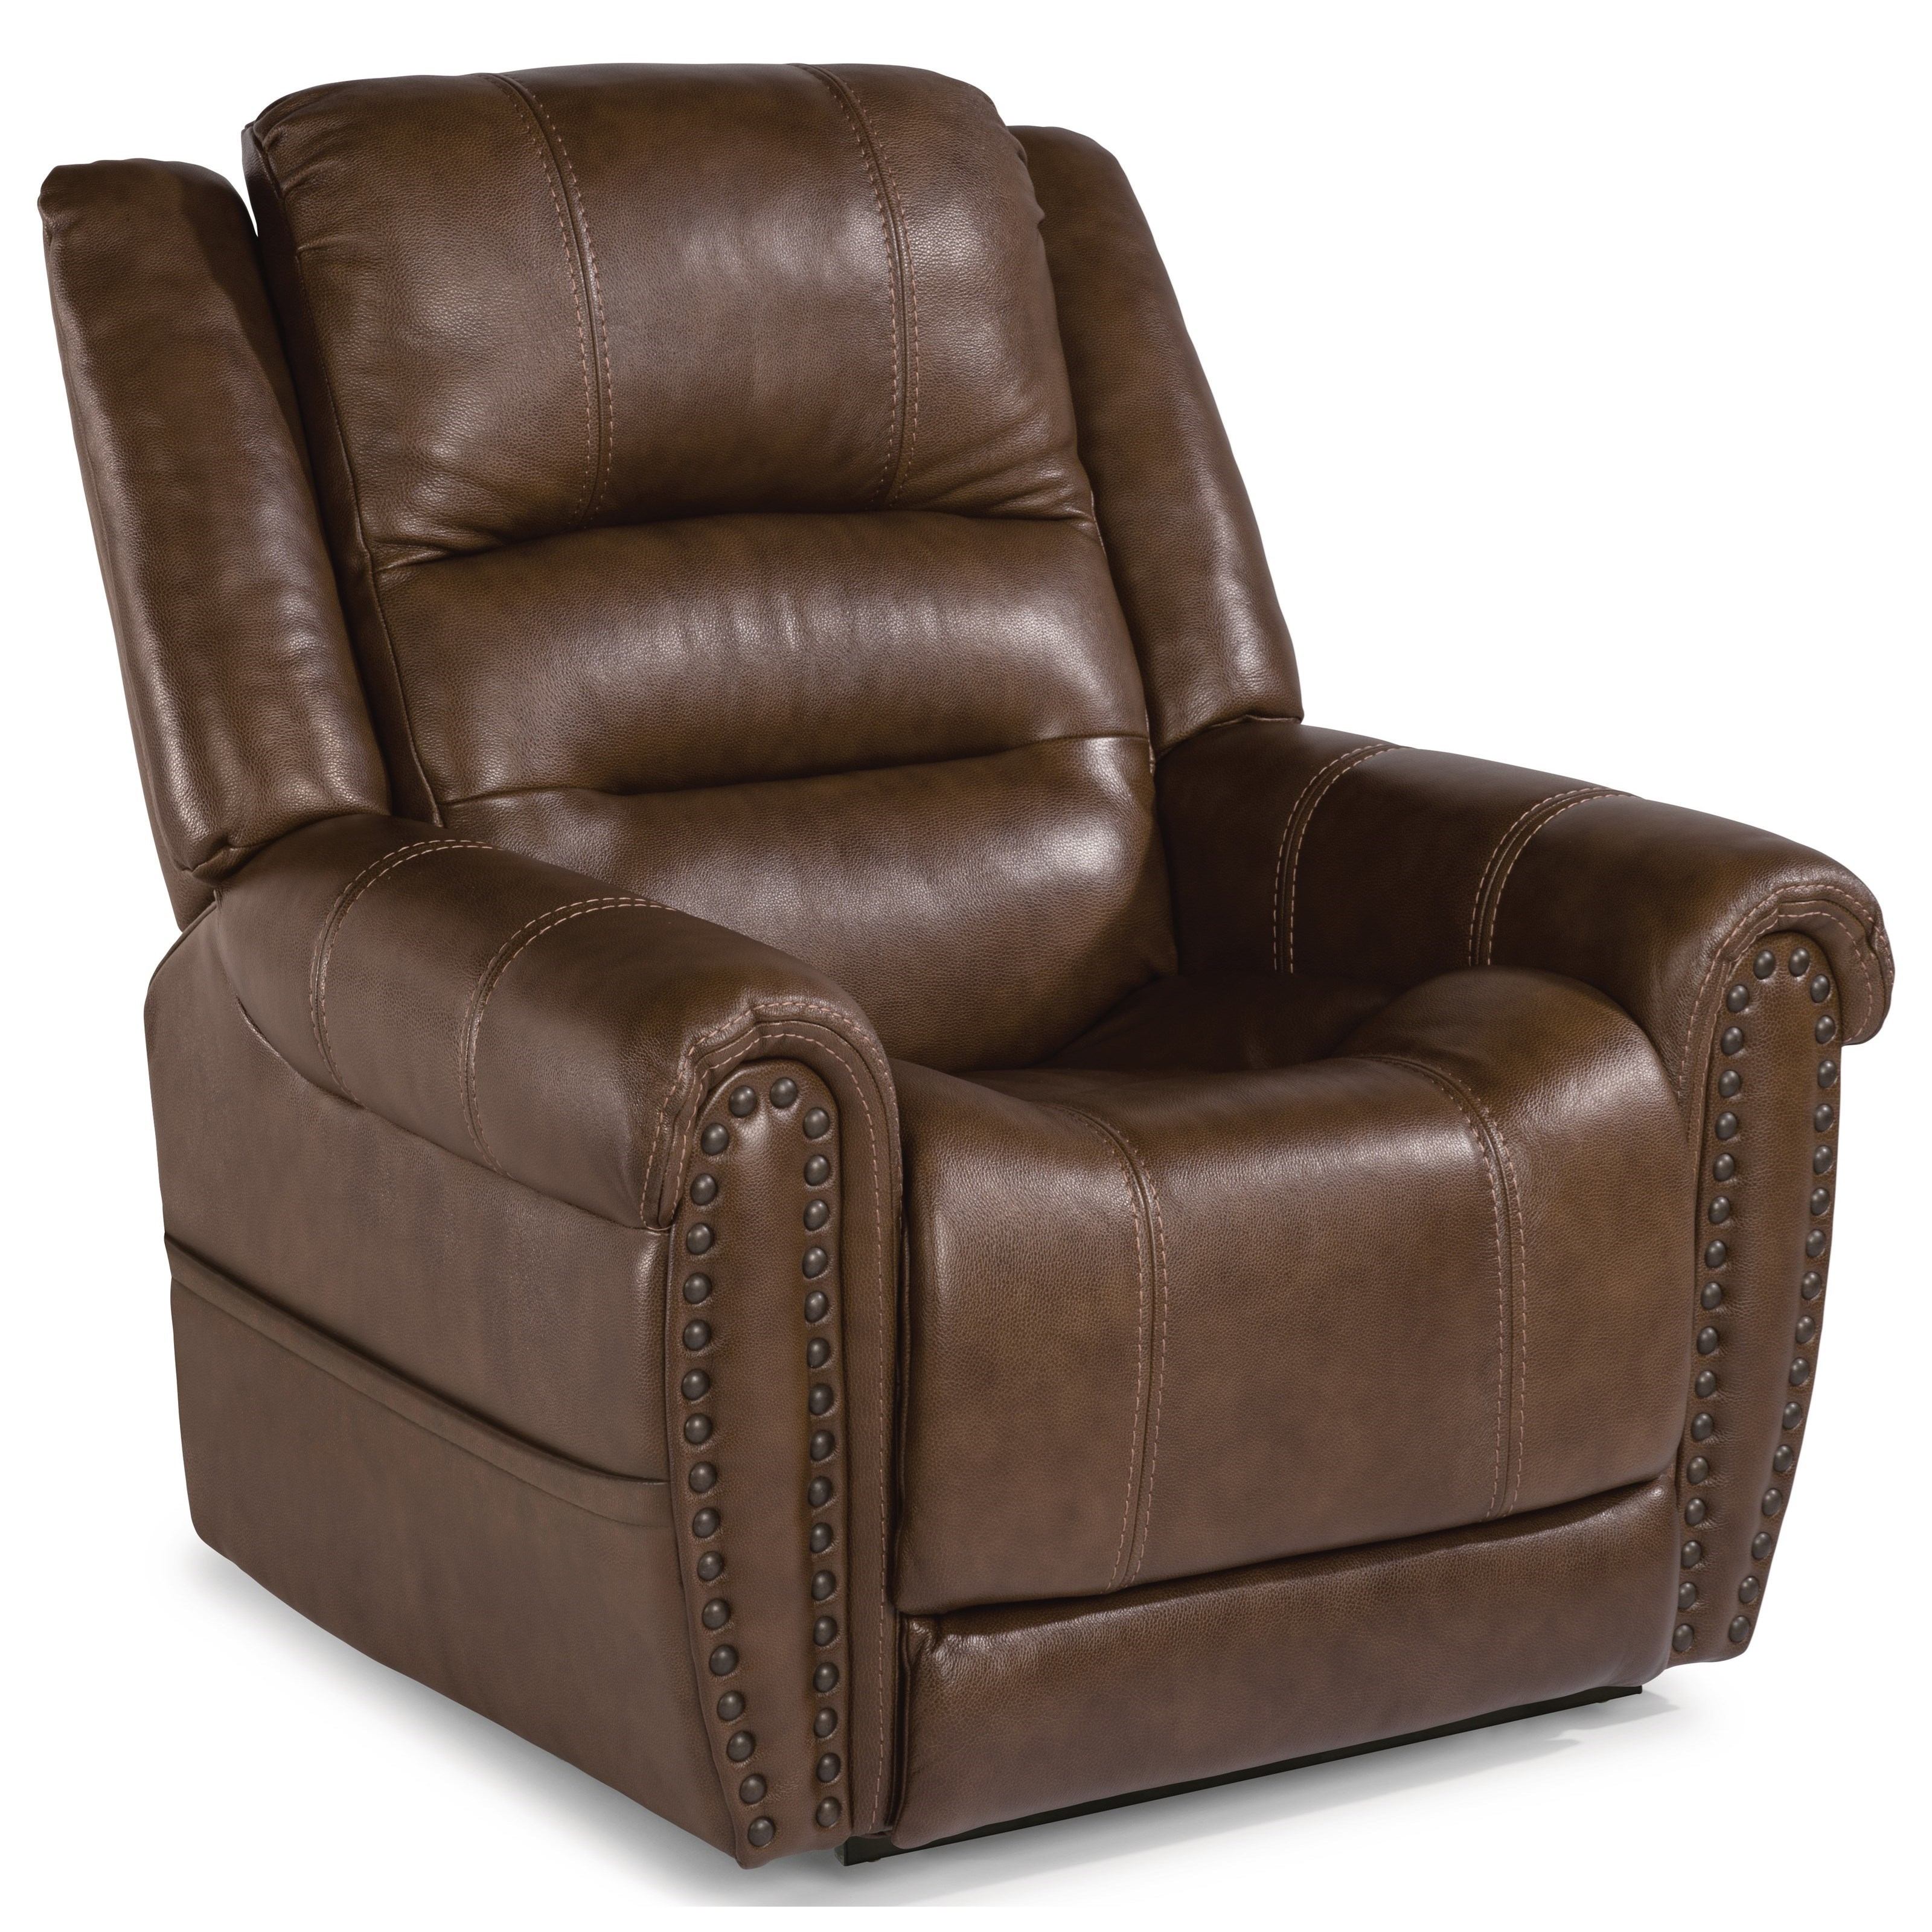 Flexsteel Latitudes Oscar Power Lift Recliner With Power